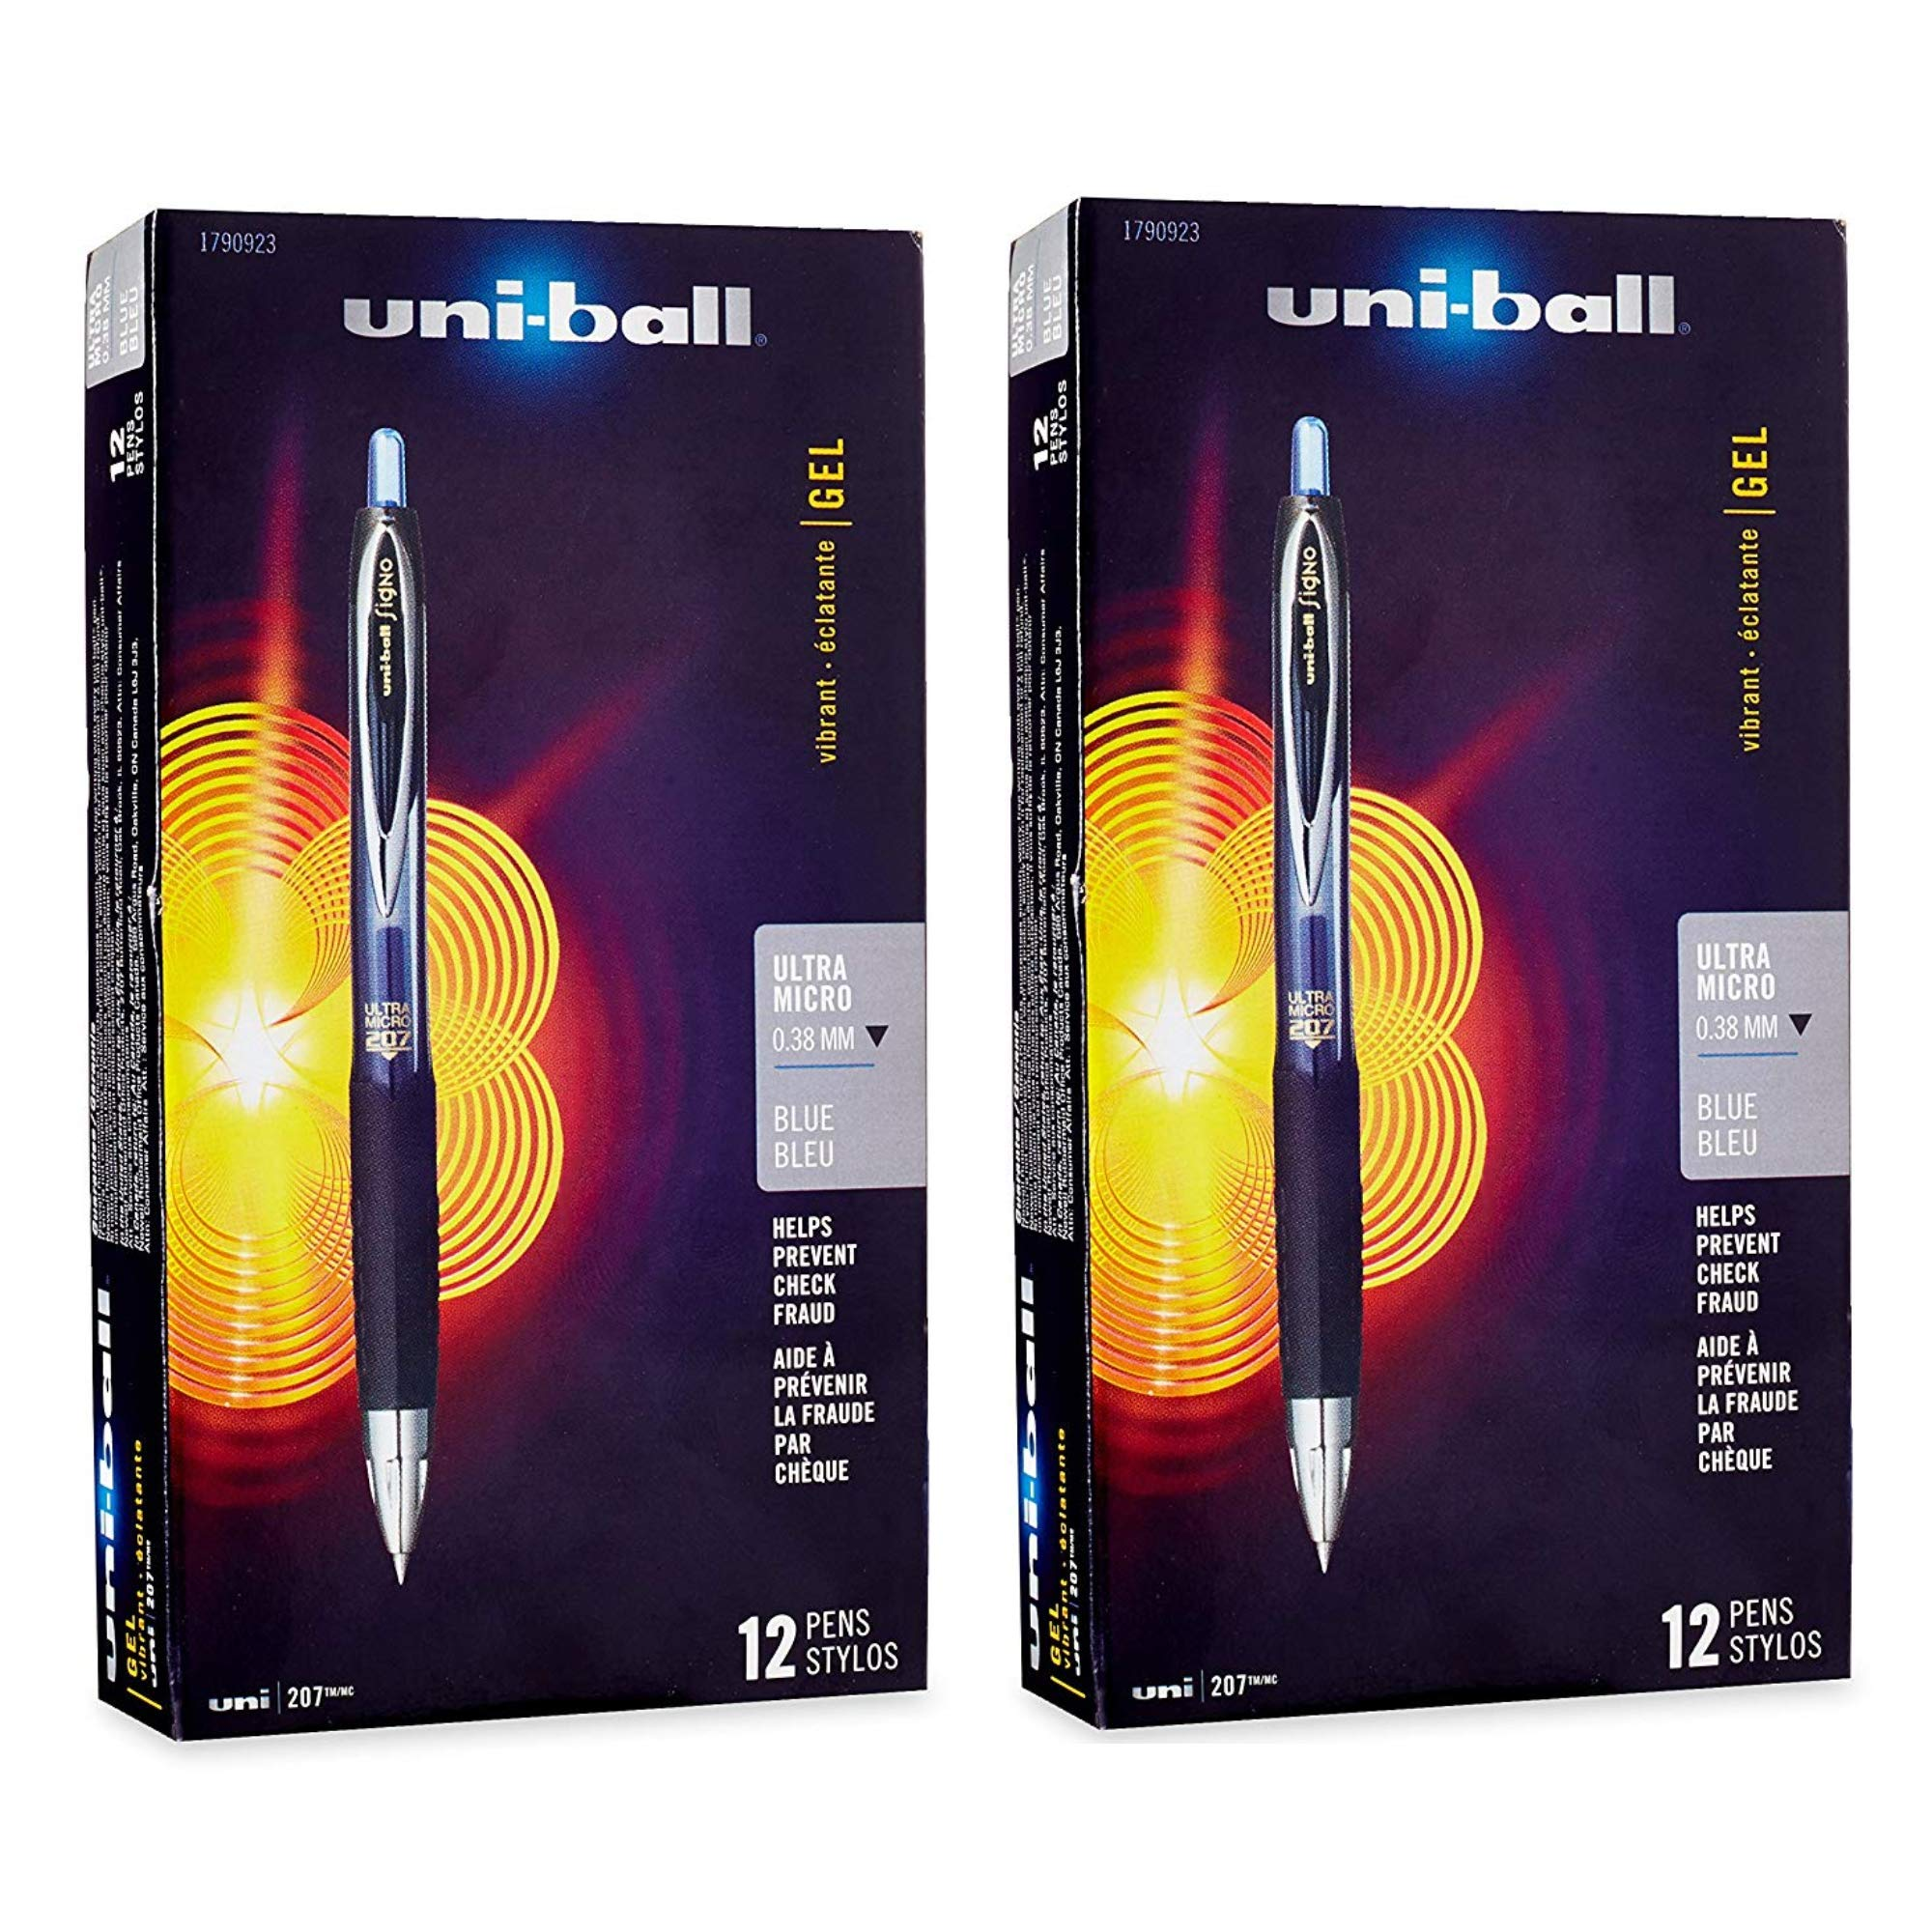 uni-ball 207 Retractable Gel Pens, Ultra Micro Point (0.38mm), Blue, 24 Count